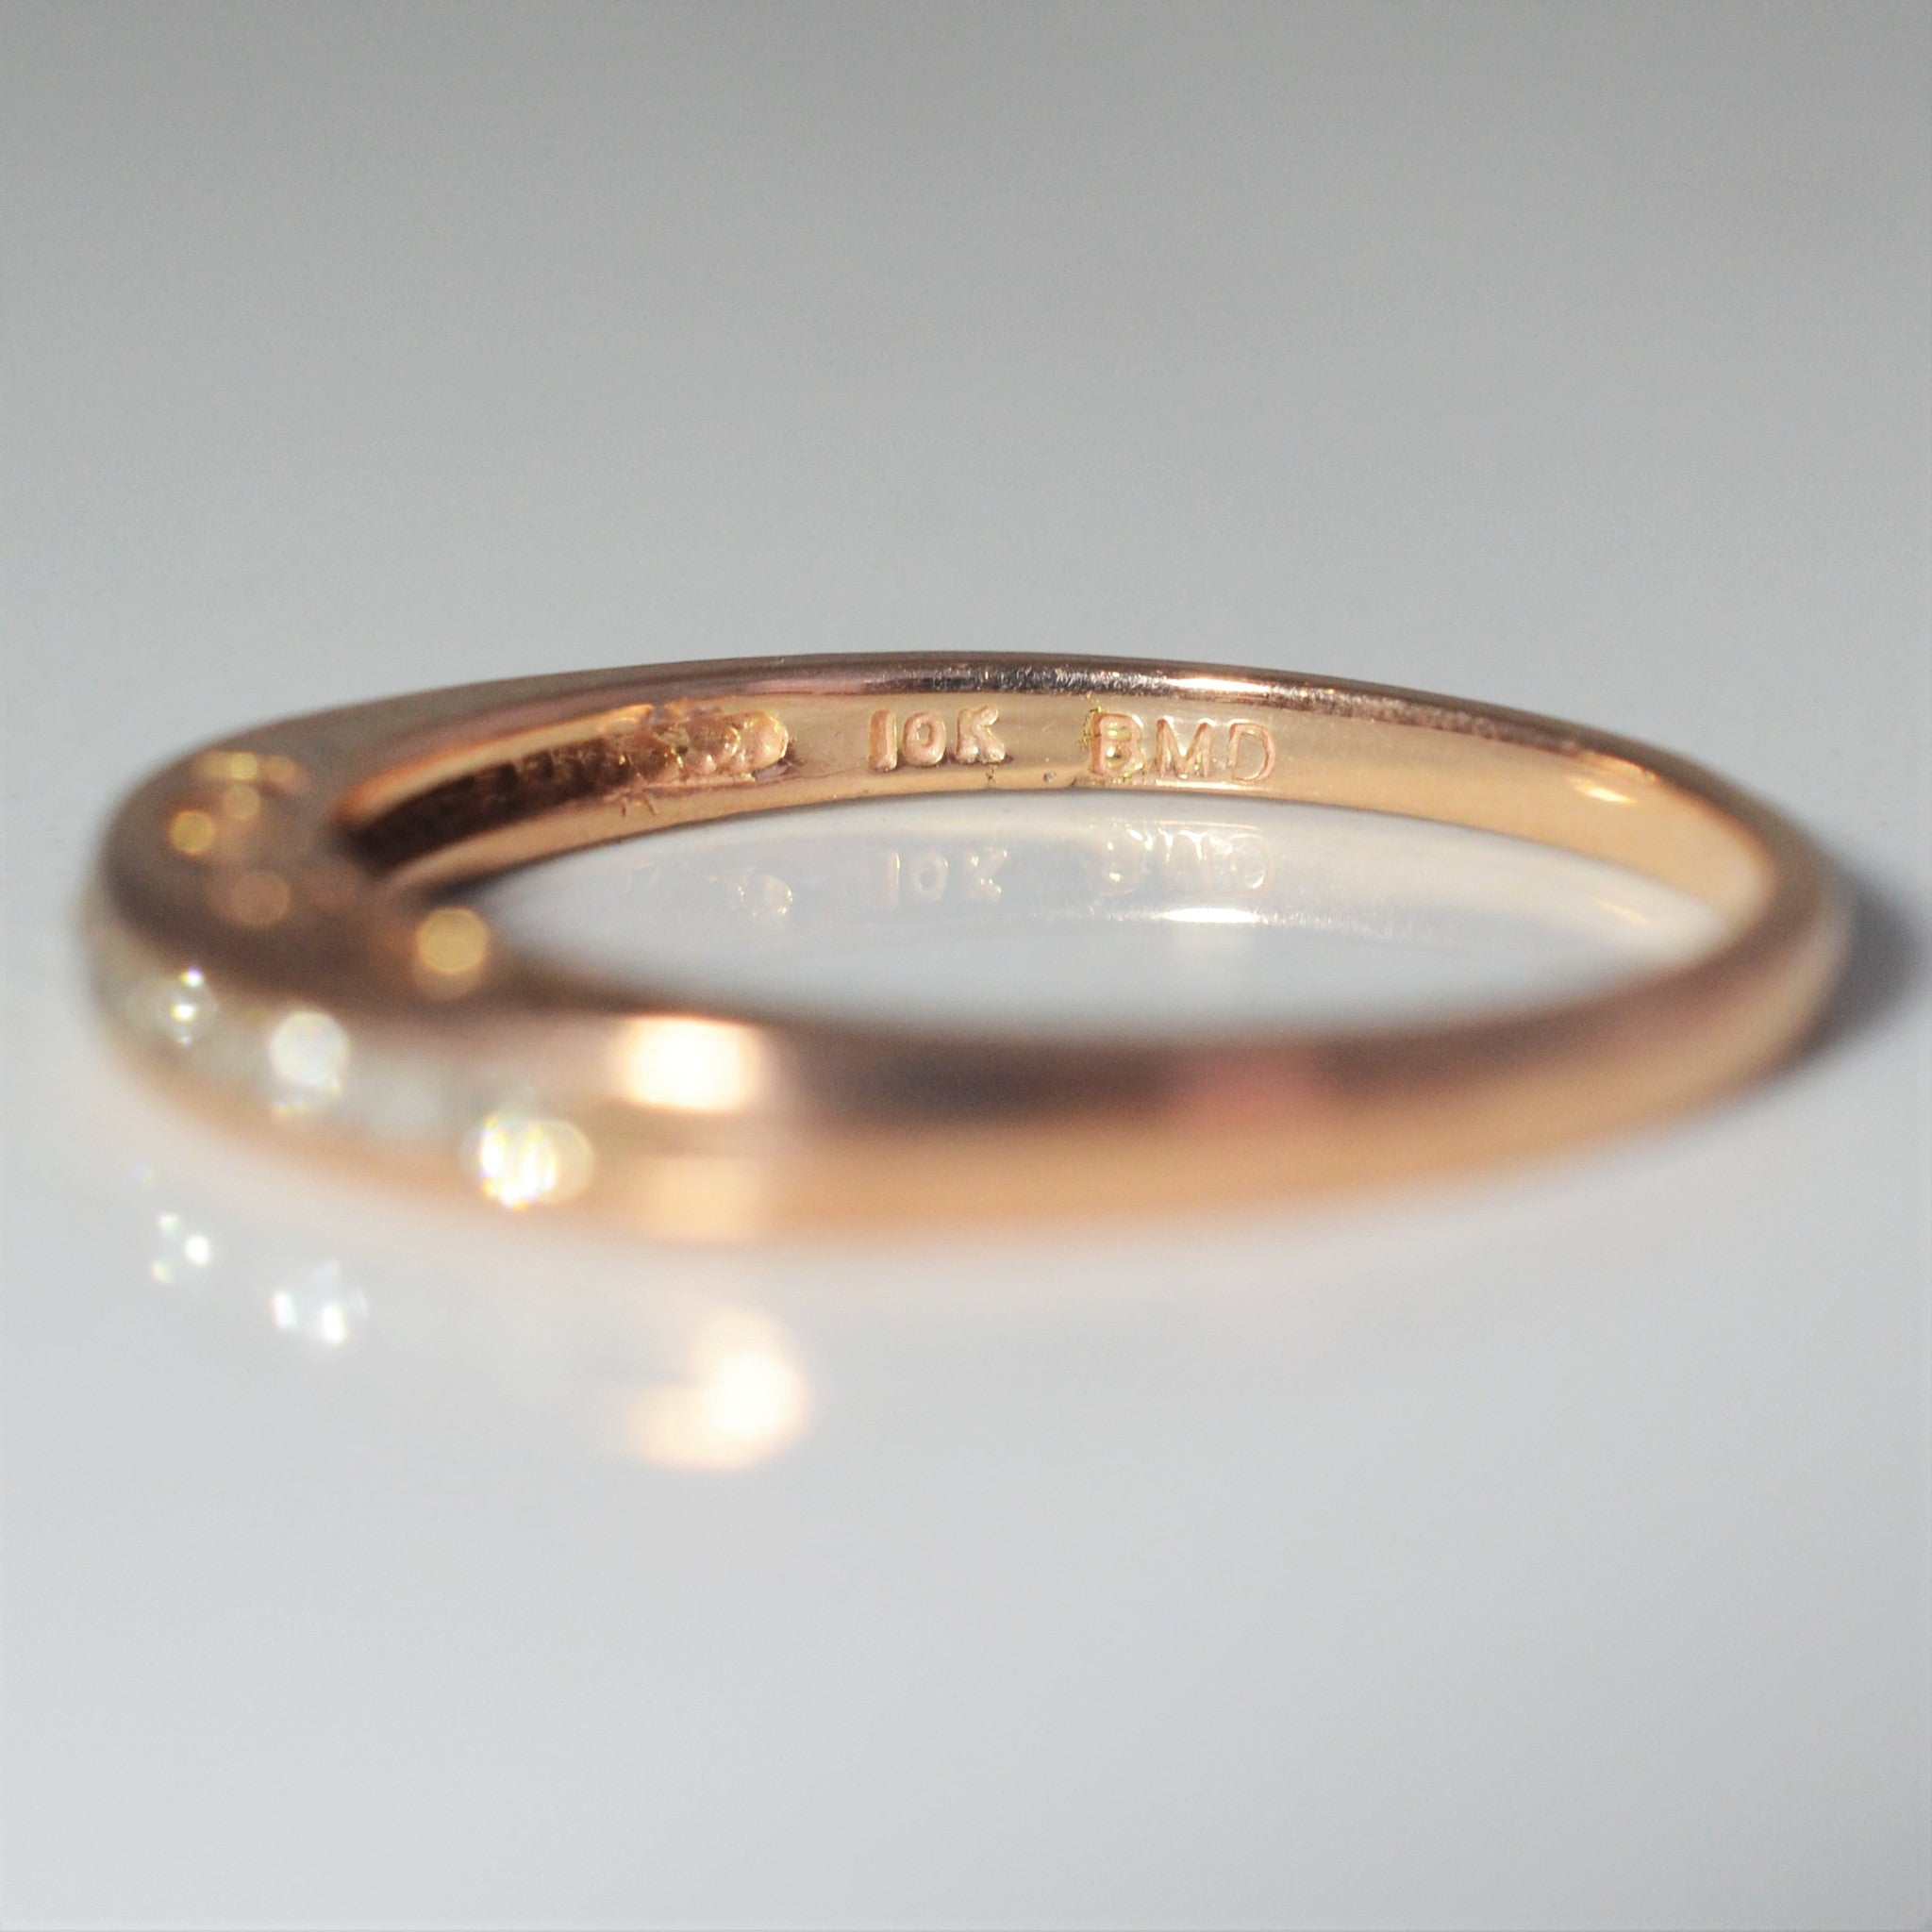 'I Love You' Rose Gold Diamond Band | 0.09 ctw, SZ 6.75 |